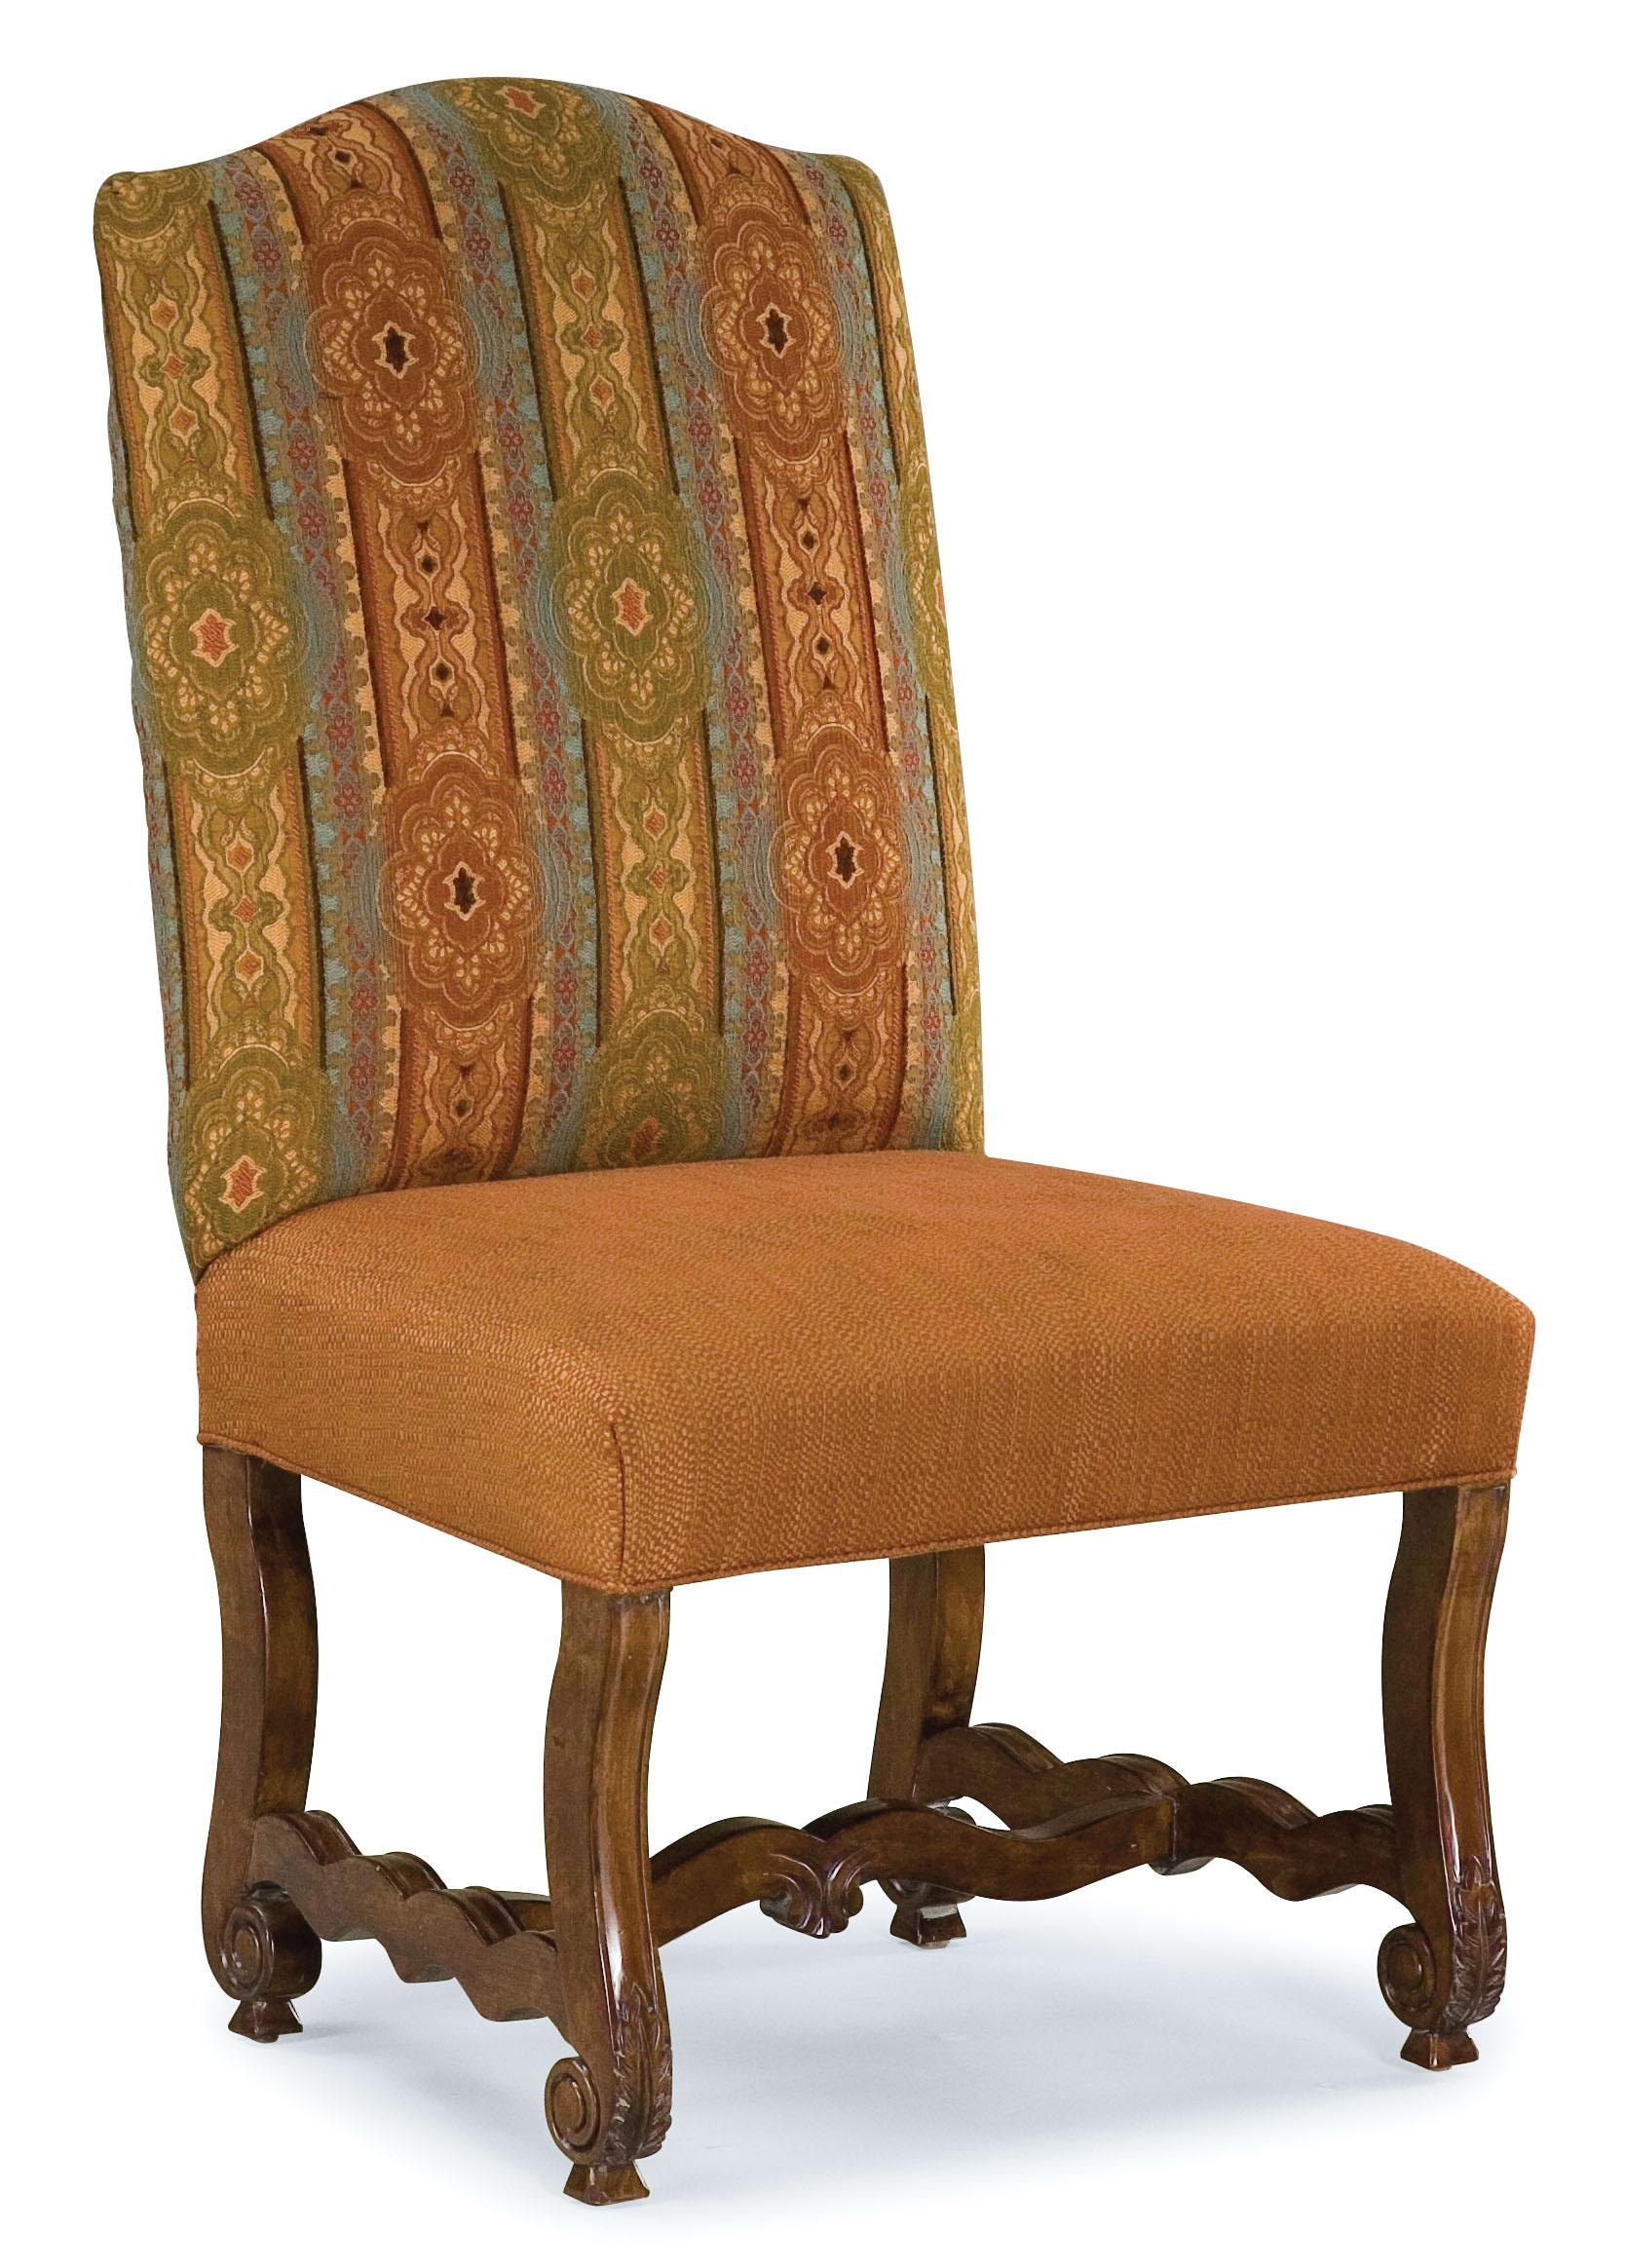 Fairfield Chairs Armless Accent Chair - Item Number: 5409-05